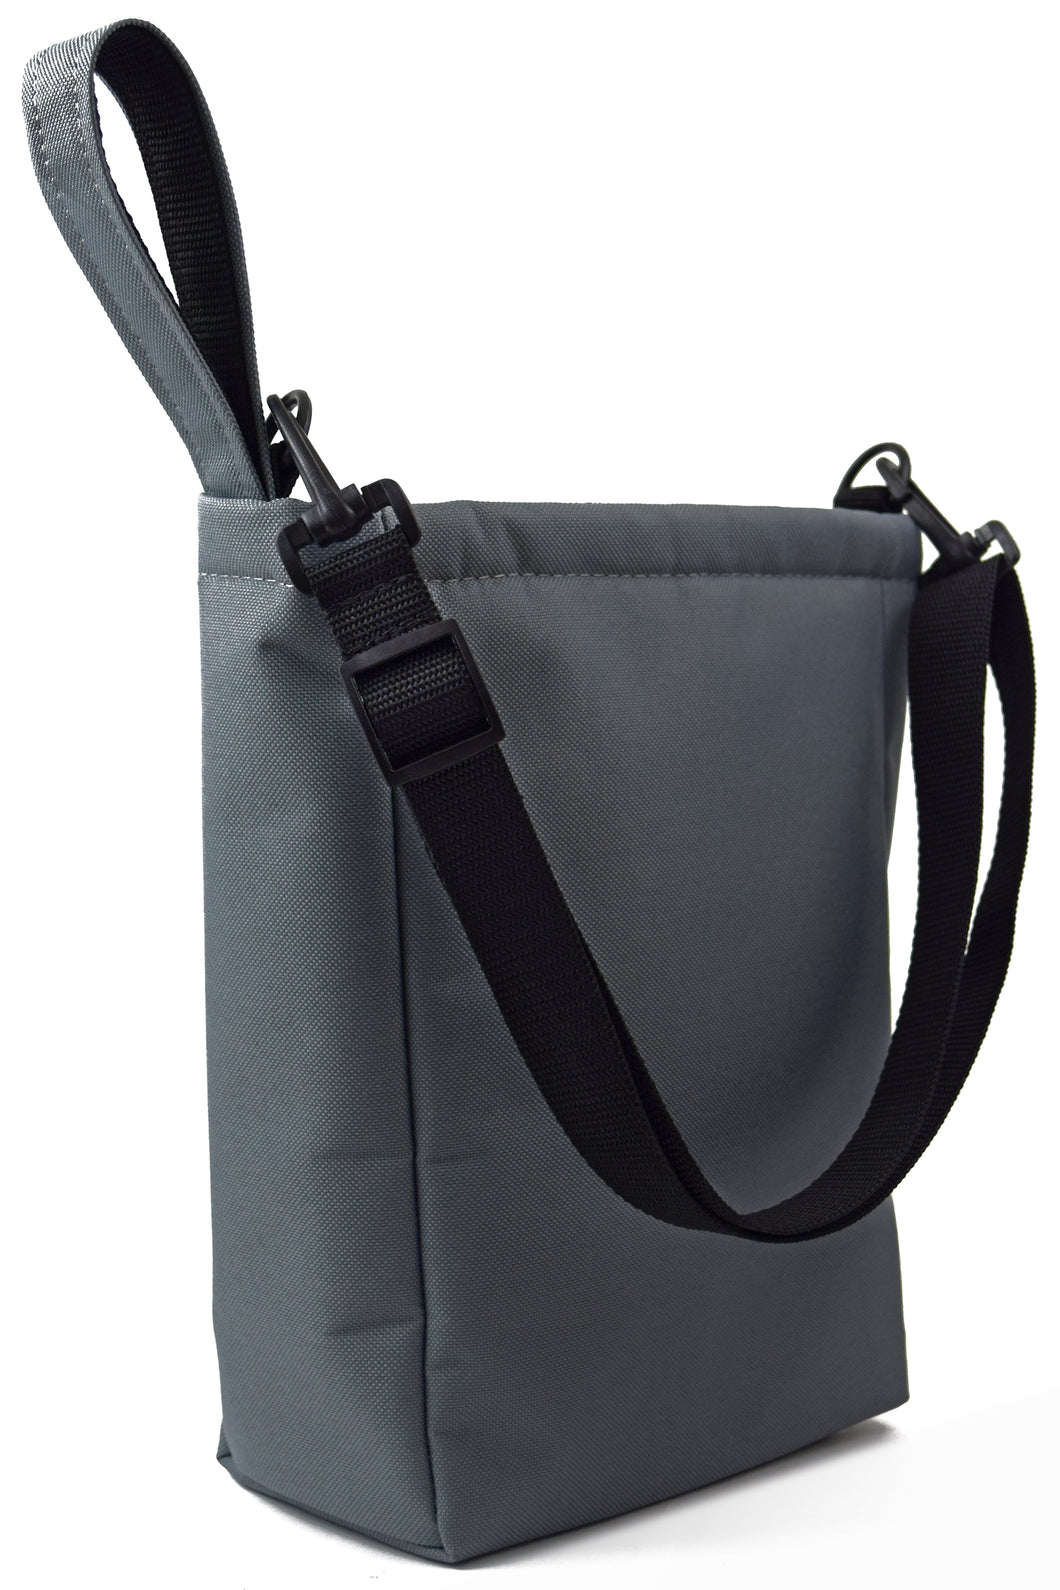 Utility grab bags in Grey by Goodstart Jones